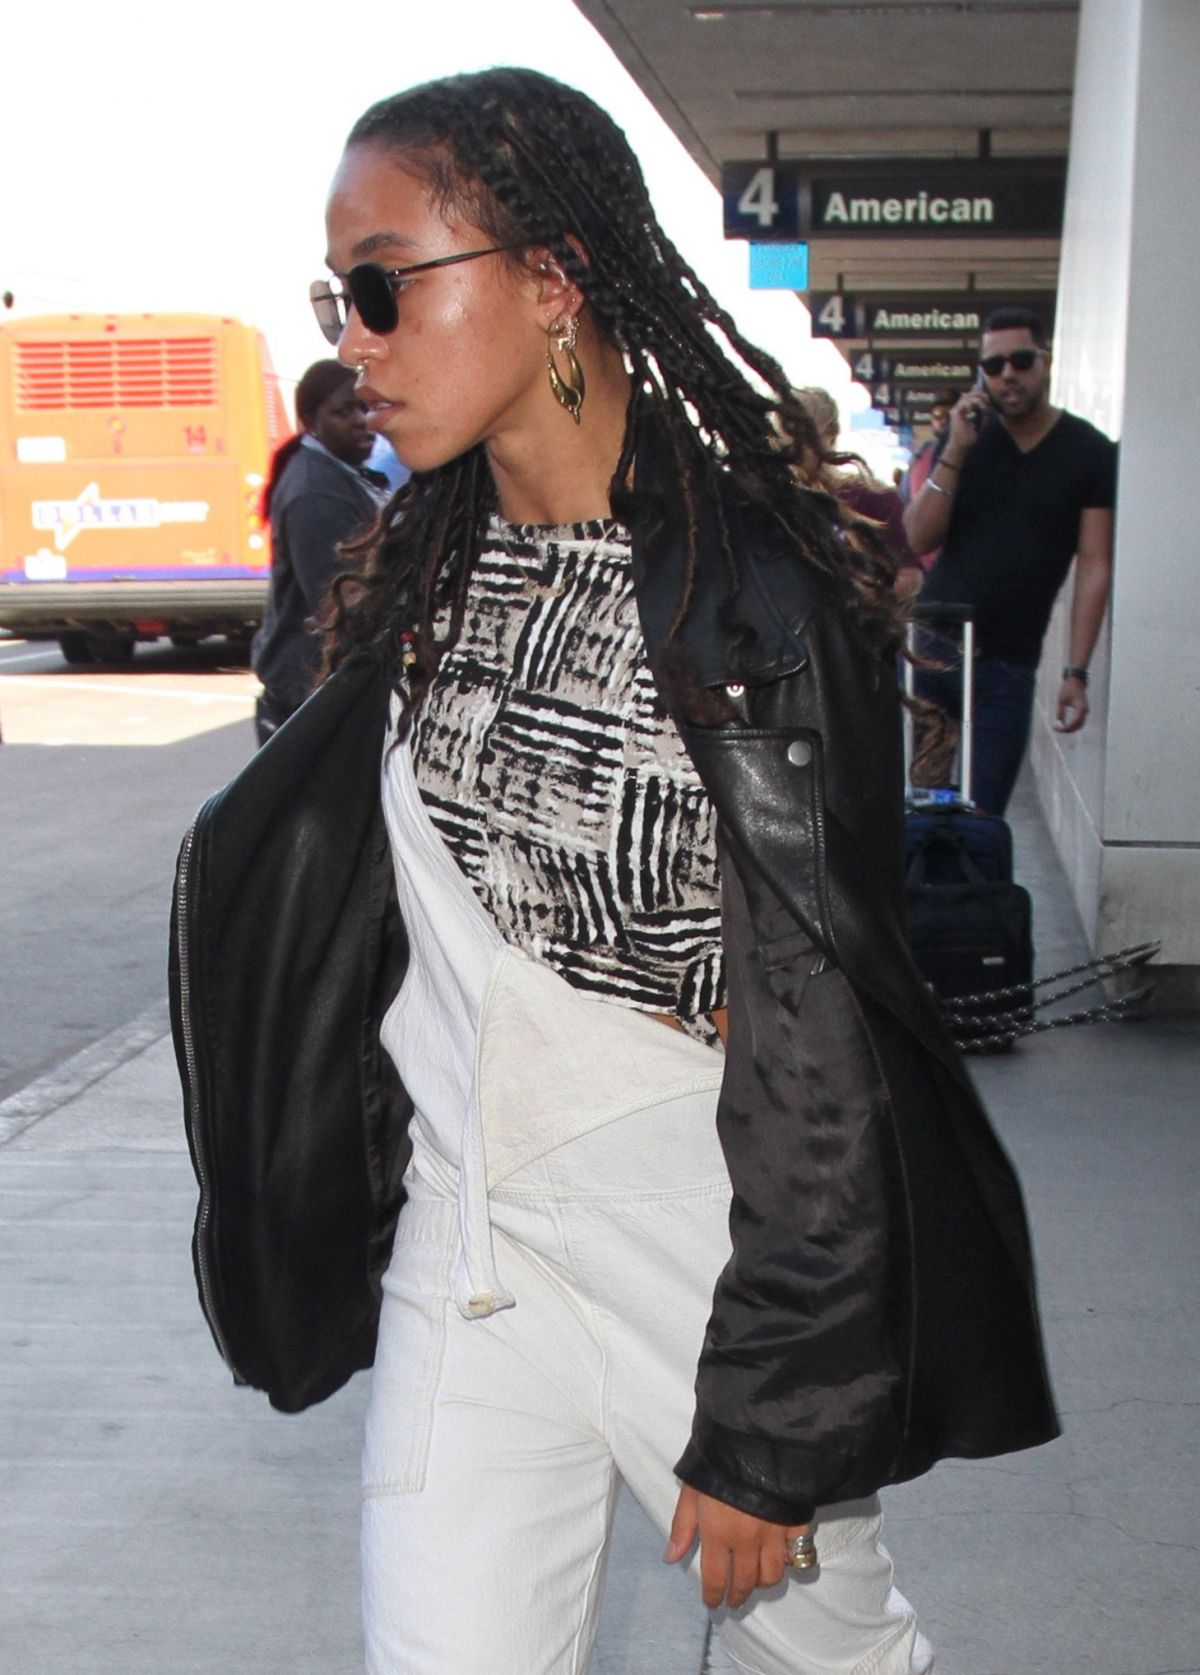 FKA TWIGS at LAX Airport in Los Angeles 09/26/2016